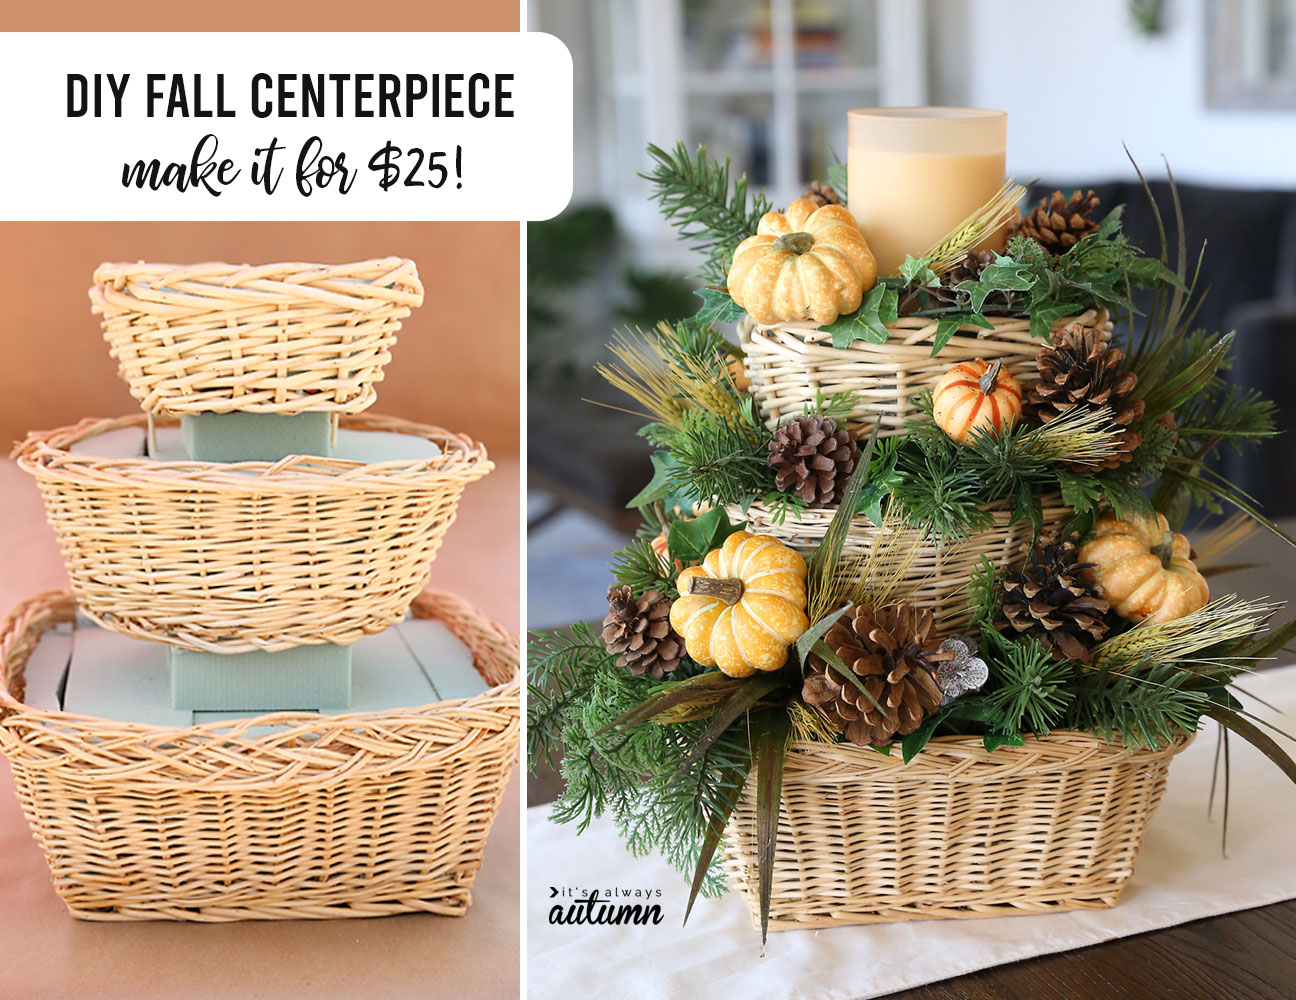 DIY Fall Centerpiece: make it for $25!